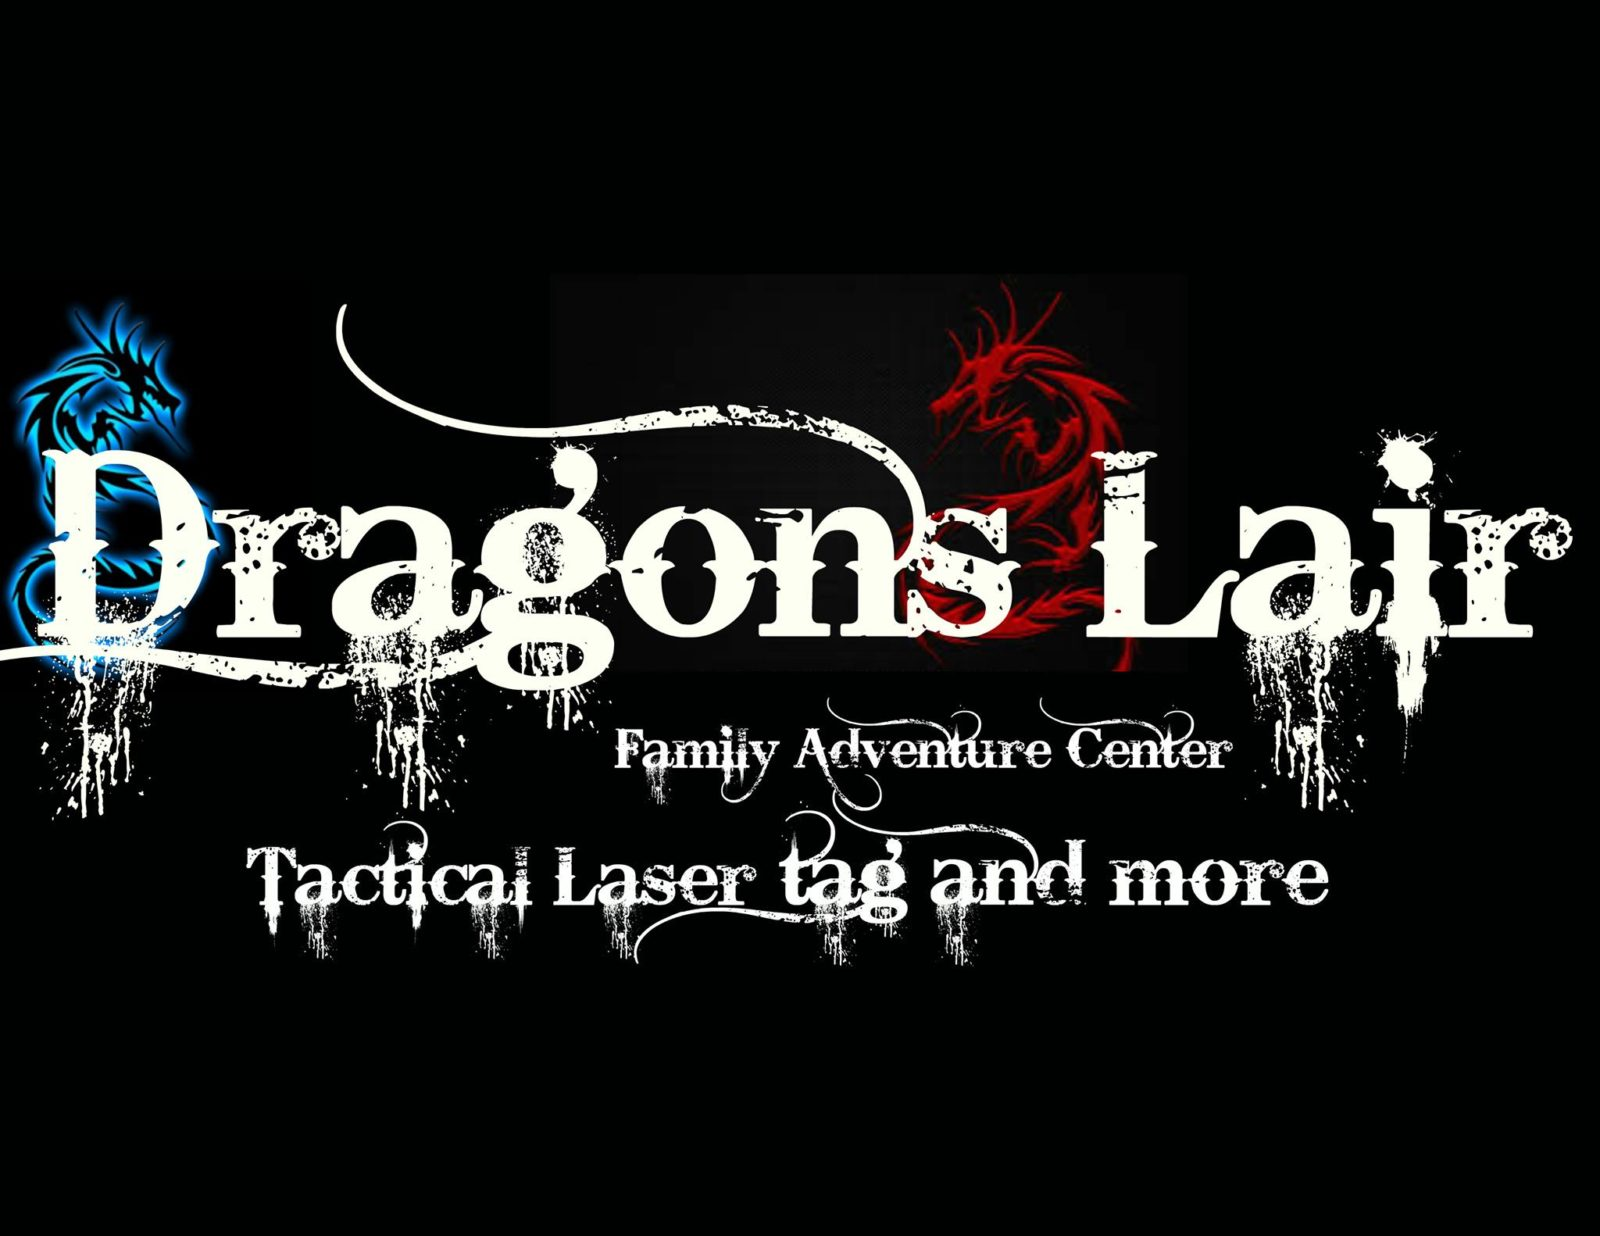 Dragon's Lair Family Adventure Center